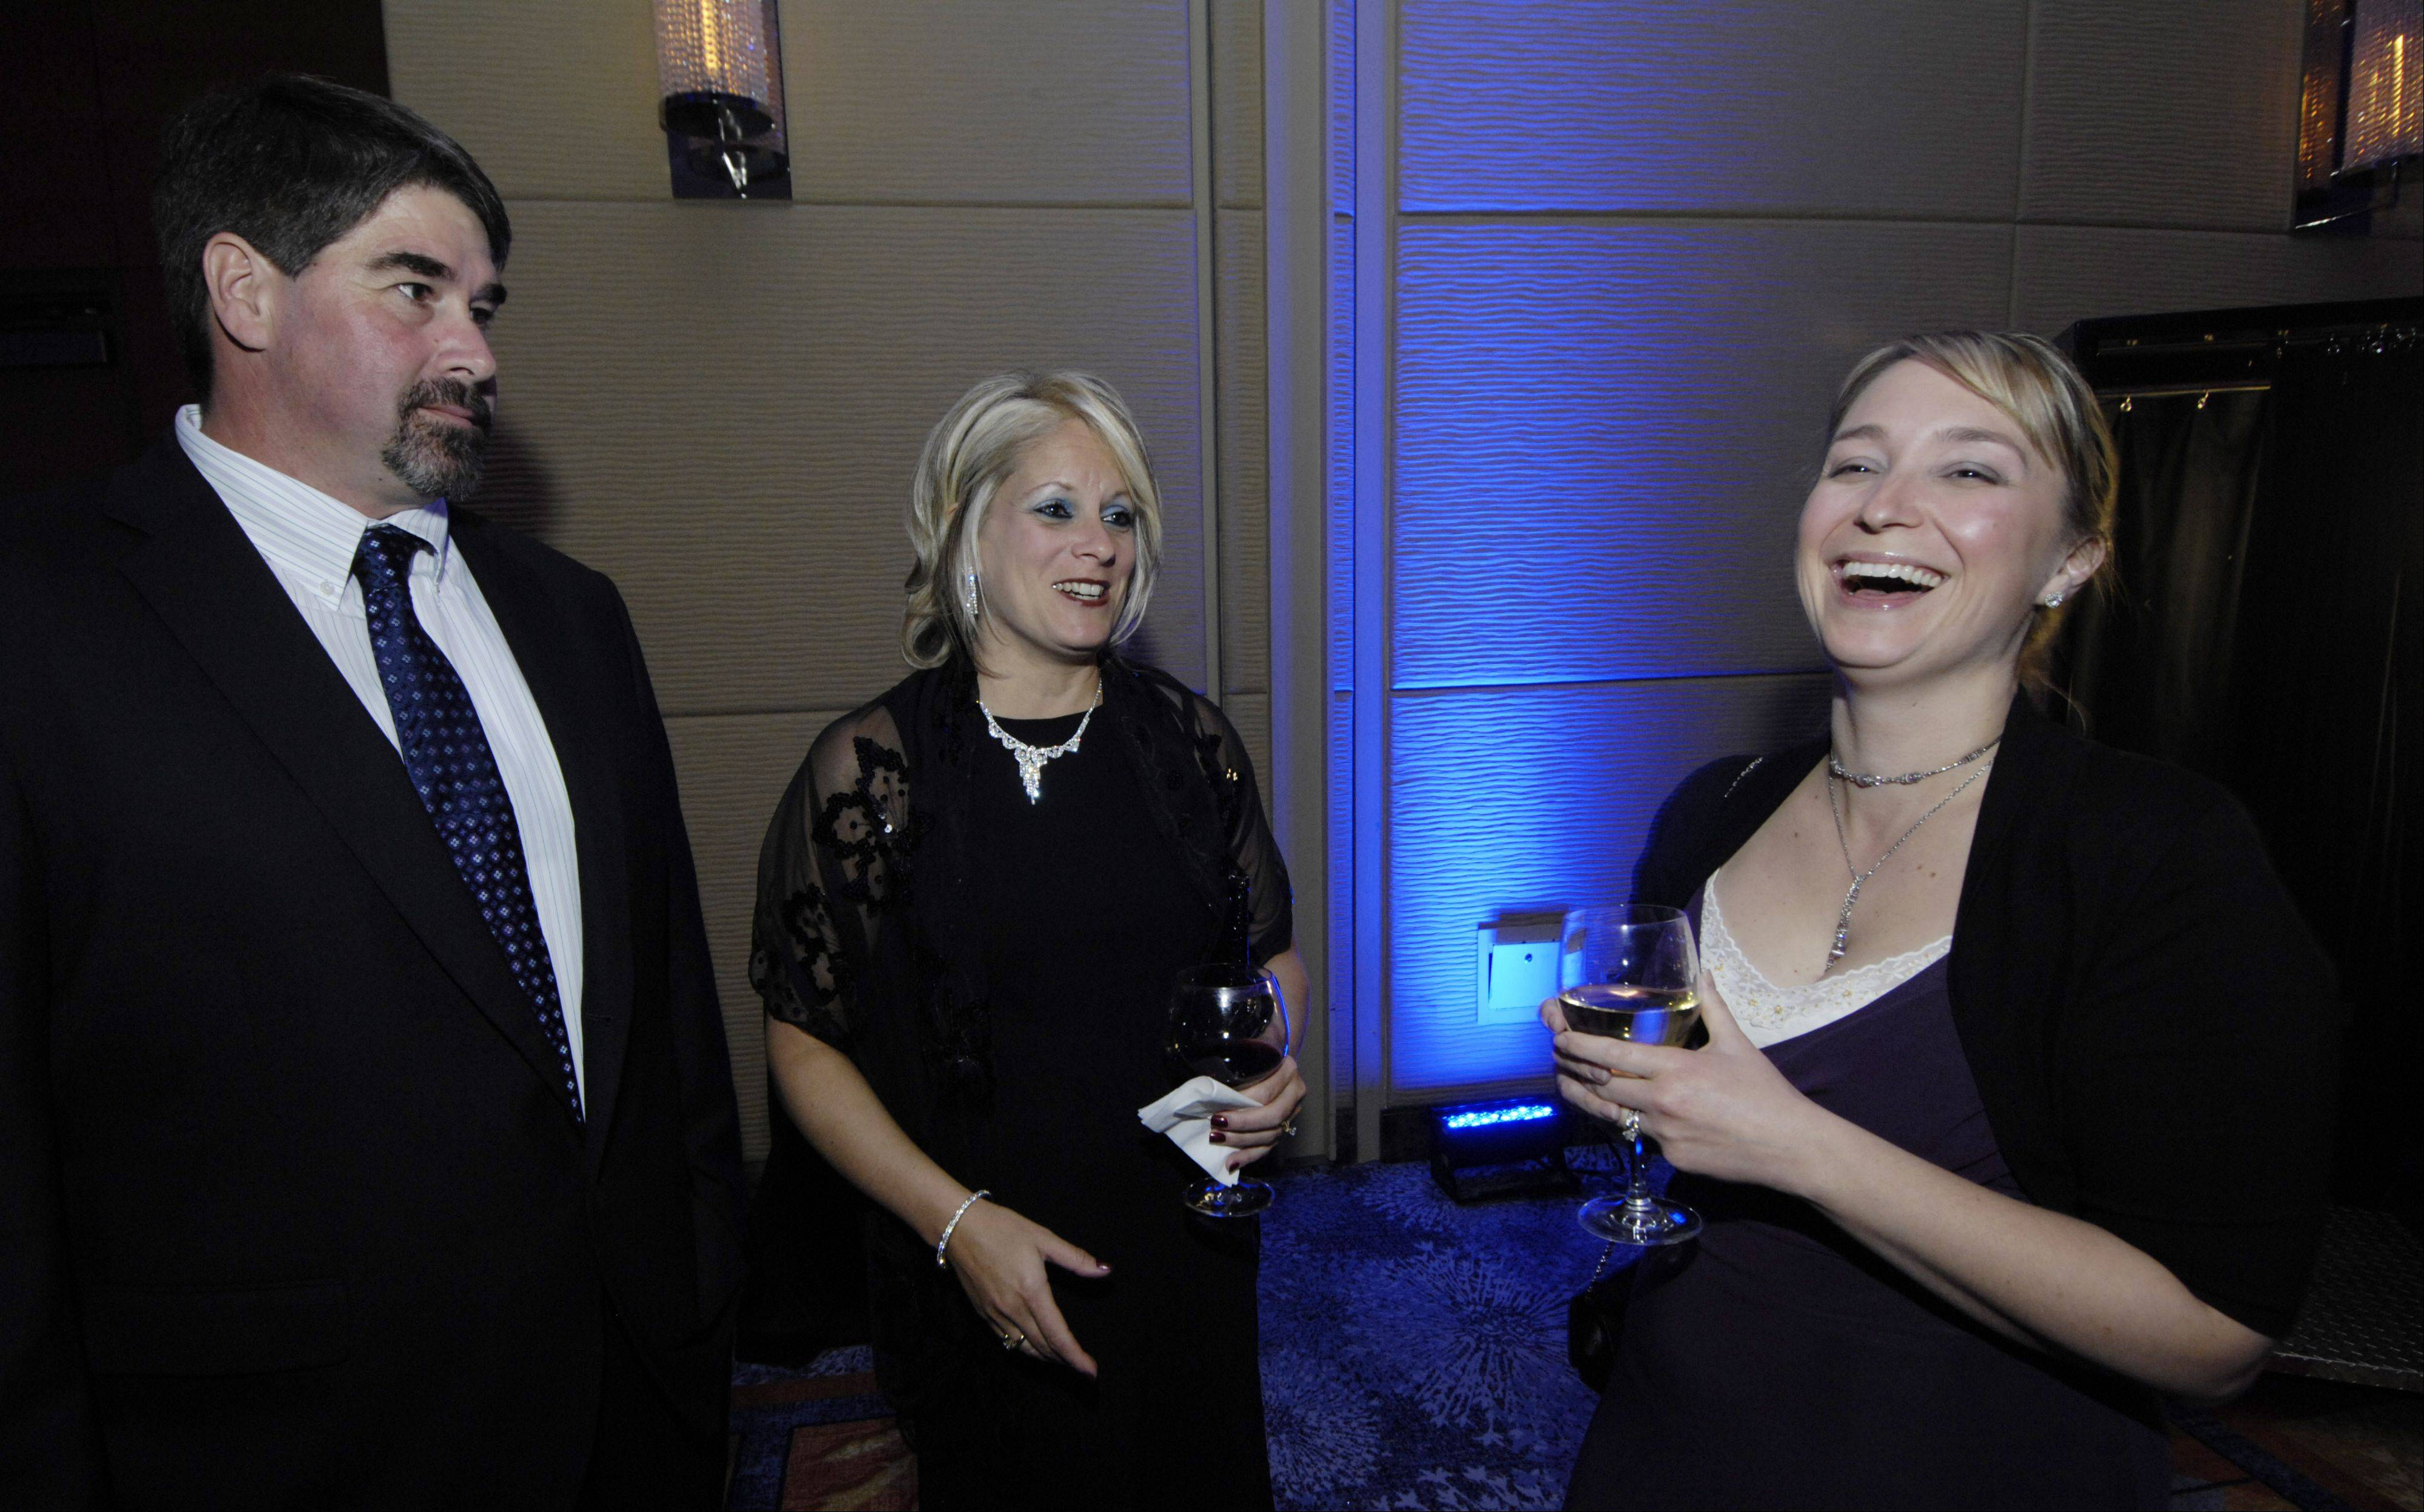 JOE LEWNARD/jlewnard@dailyherald.com Left to right, Greg and Chris Vanhauter of Elk Grove Village and Lisa Augustine chat during the Schaumburg Business Association gala and awards Saturday at the Renaissance Convention Center Hotel.